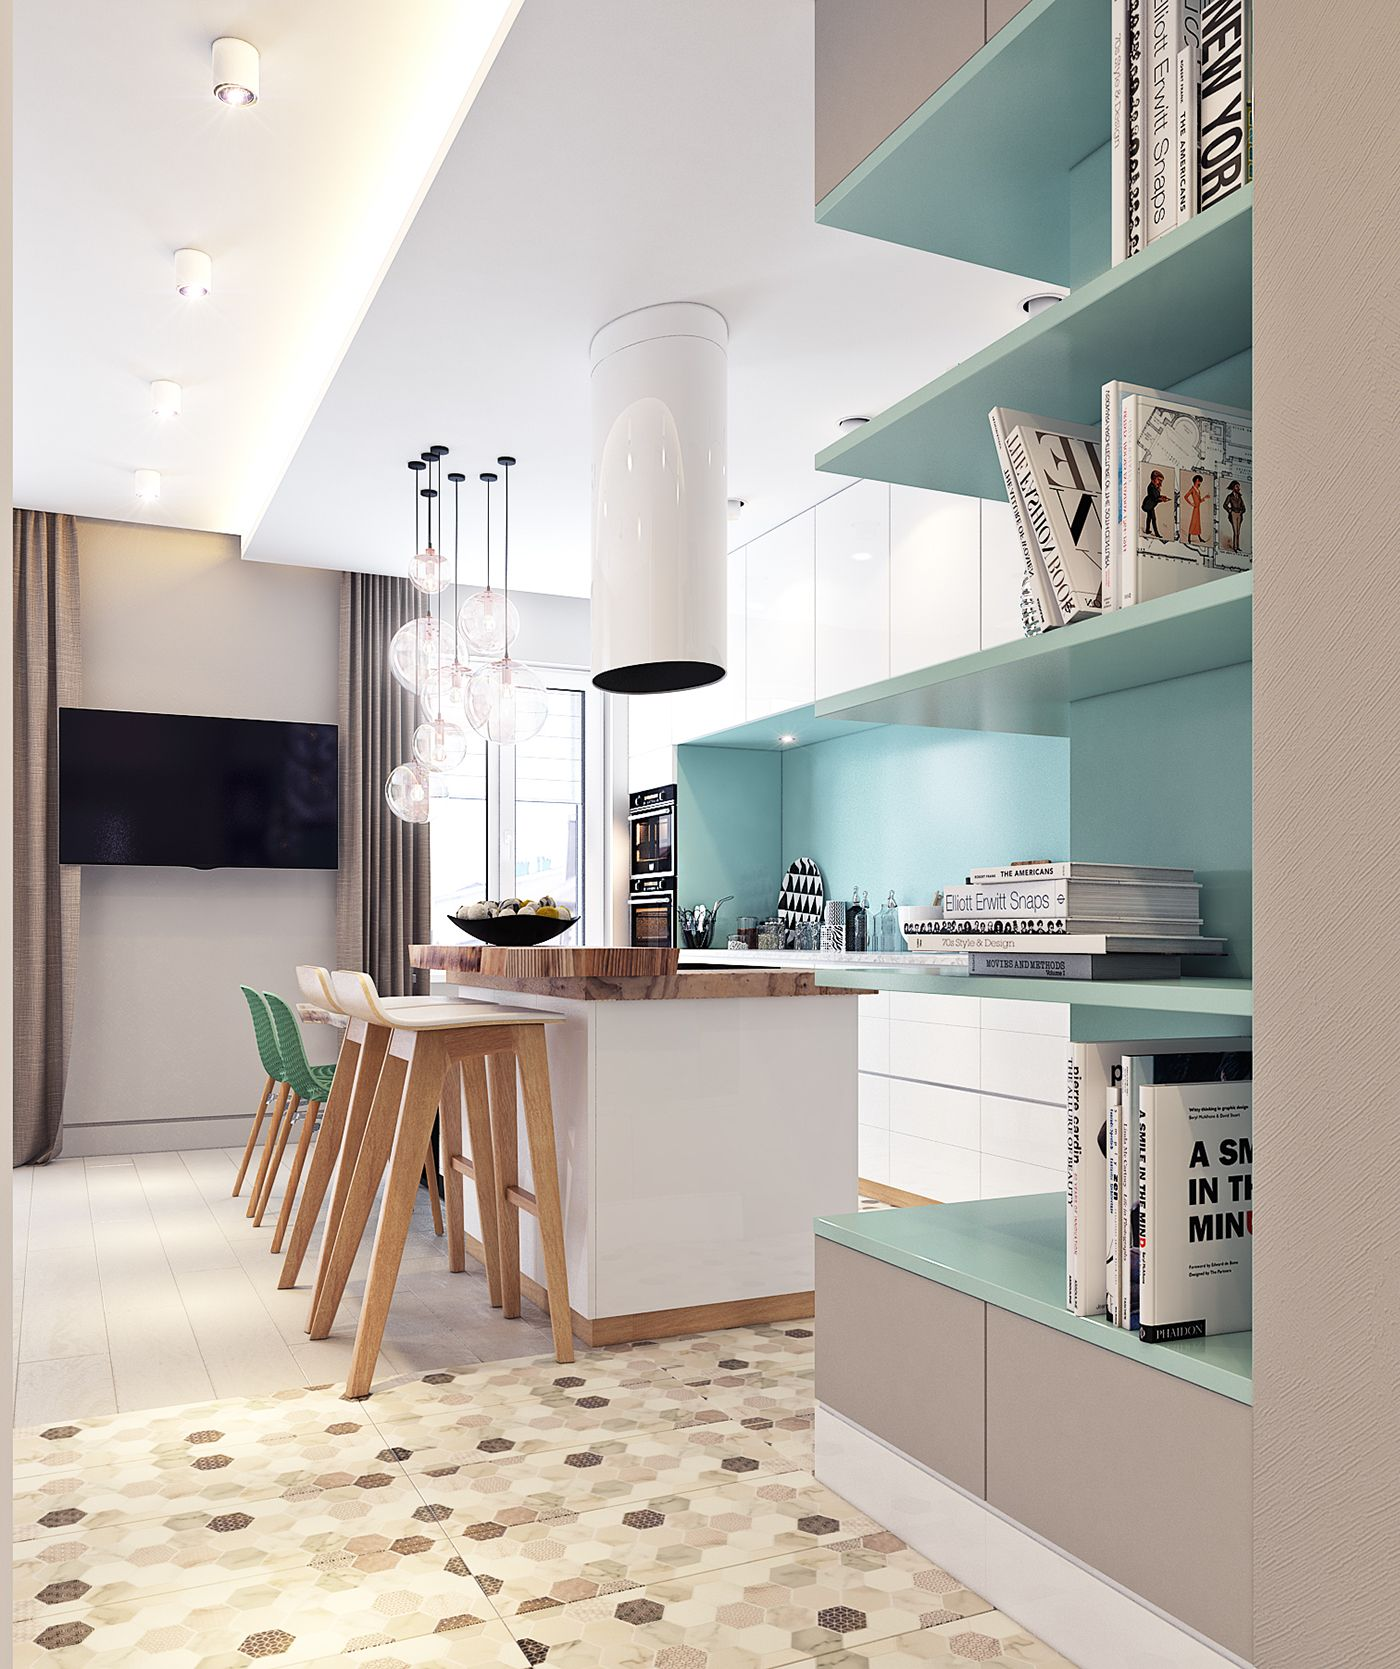 Small apartment 45 sq.m. on Behance #kitchen #turquoise | Studios ...